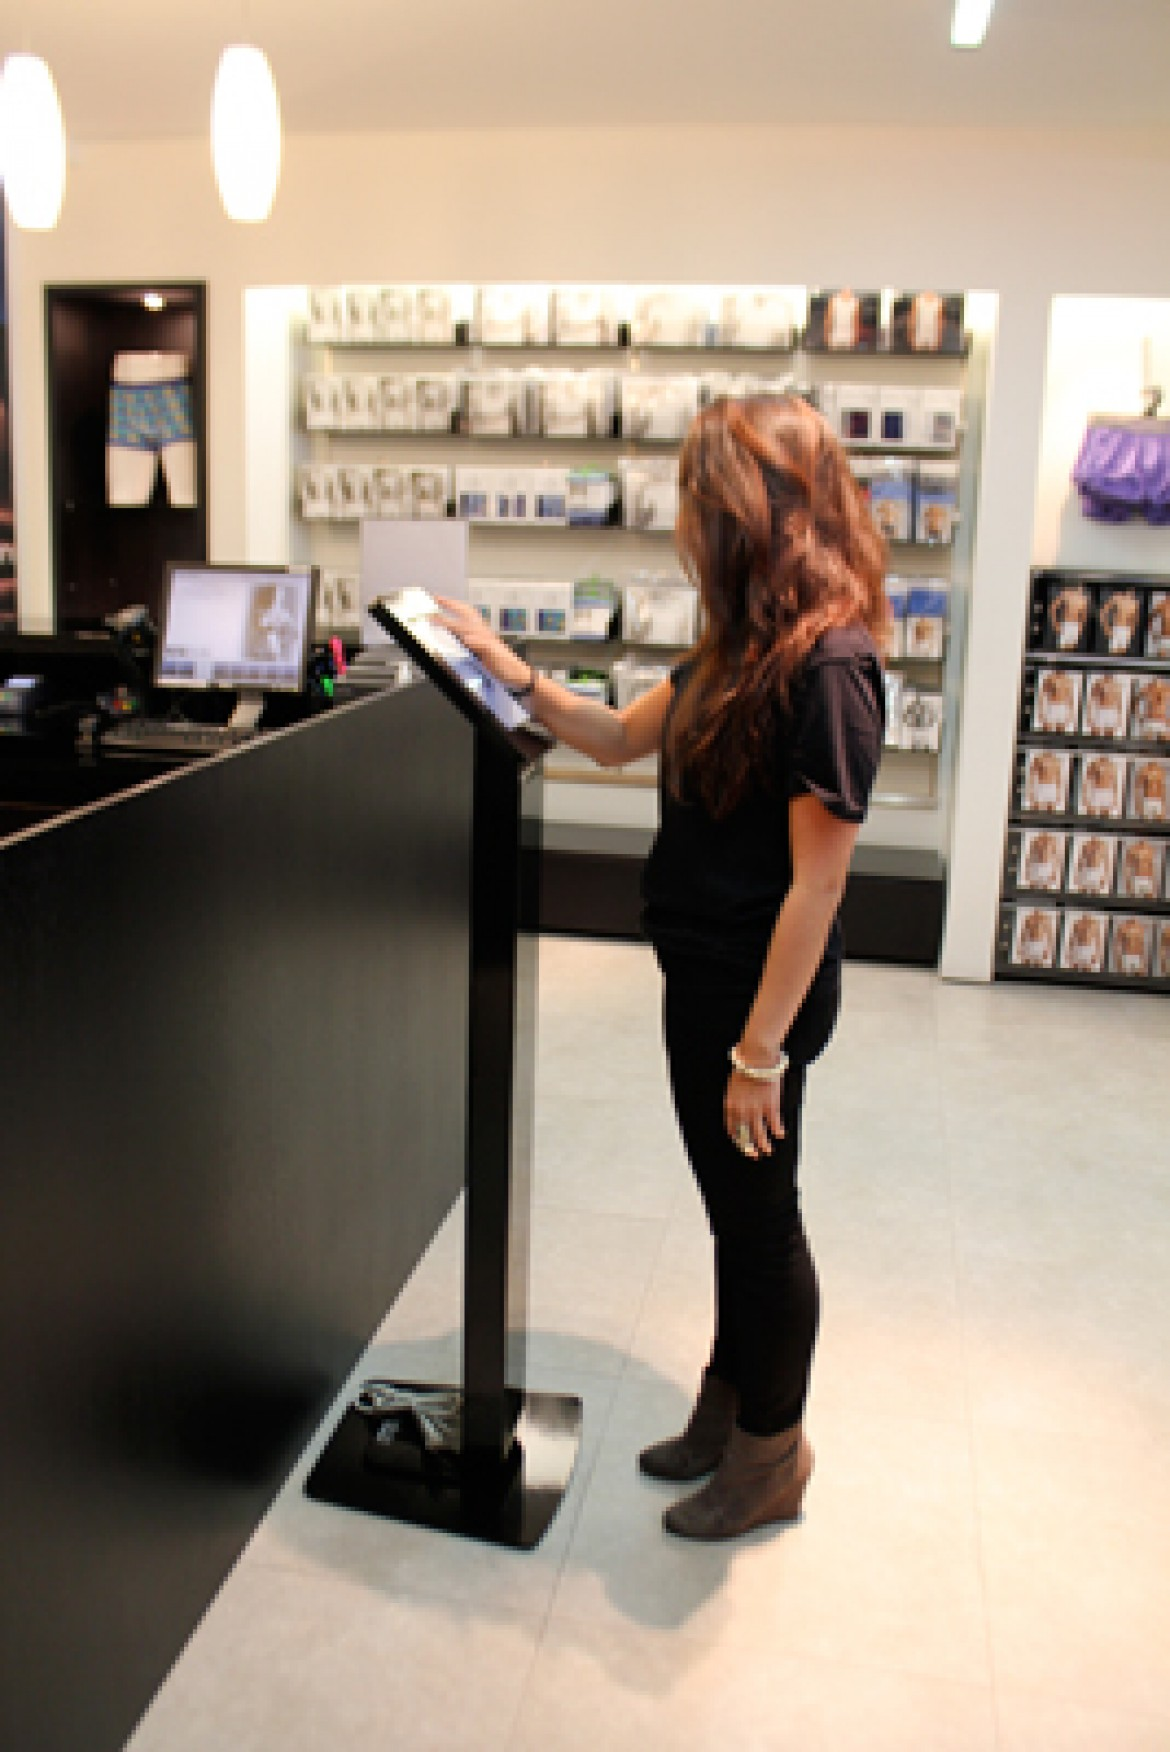 7 Innovative Ways the iPad Is Used in Retail